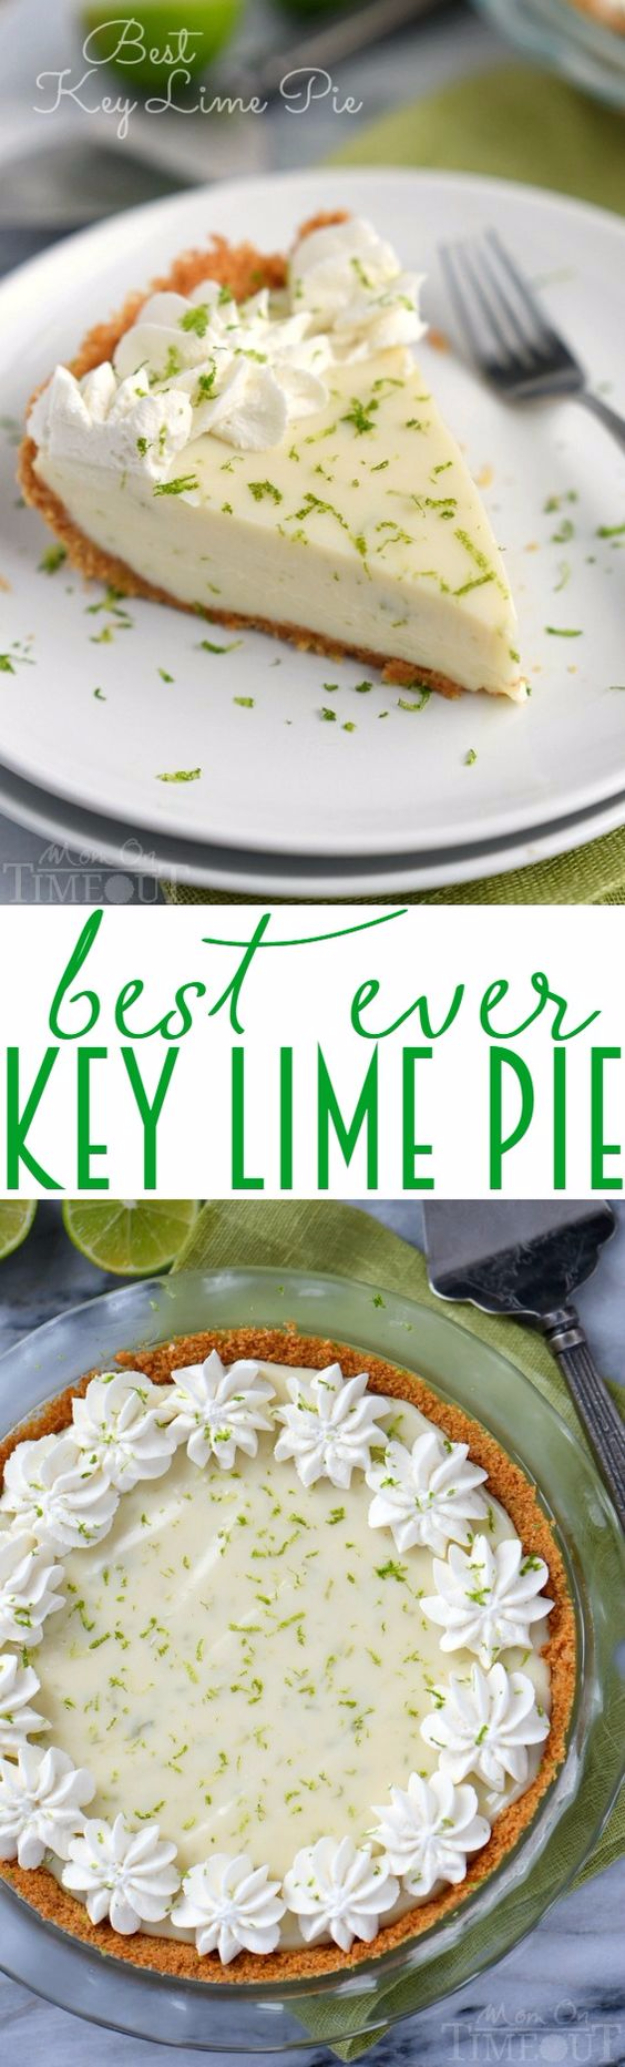 Best Pie Recipes - Best Key Lime Pie - Easy Pie Recipes From Scratch for Pecan, Apple, Banana, Pumpkin, Fruit, Peach and Chocolate Pies. Yummy Graham Cracker Crusts and Homemade Meringue #recipes #dessert